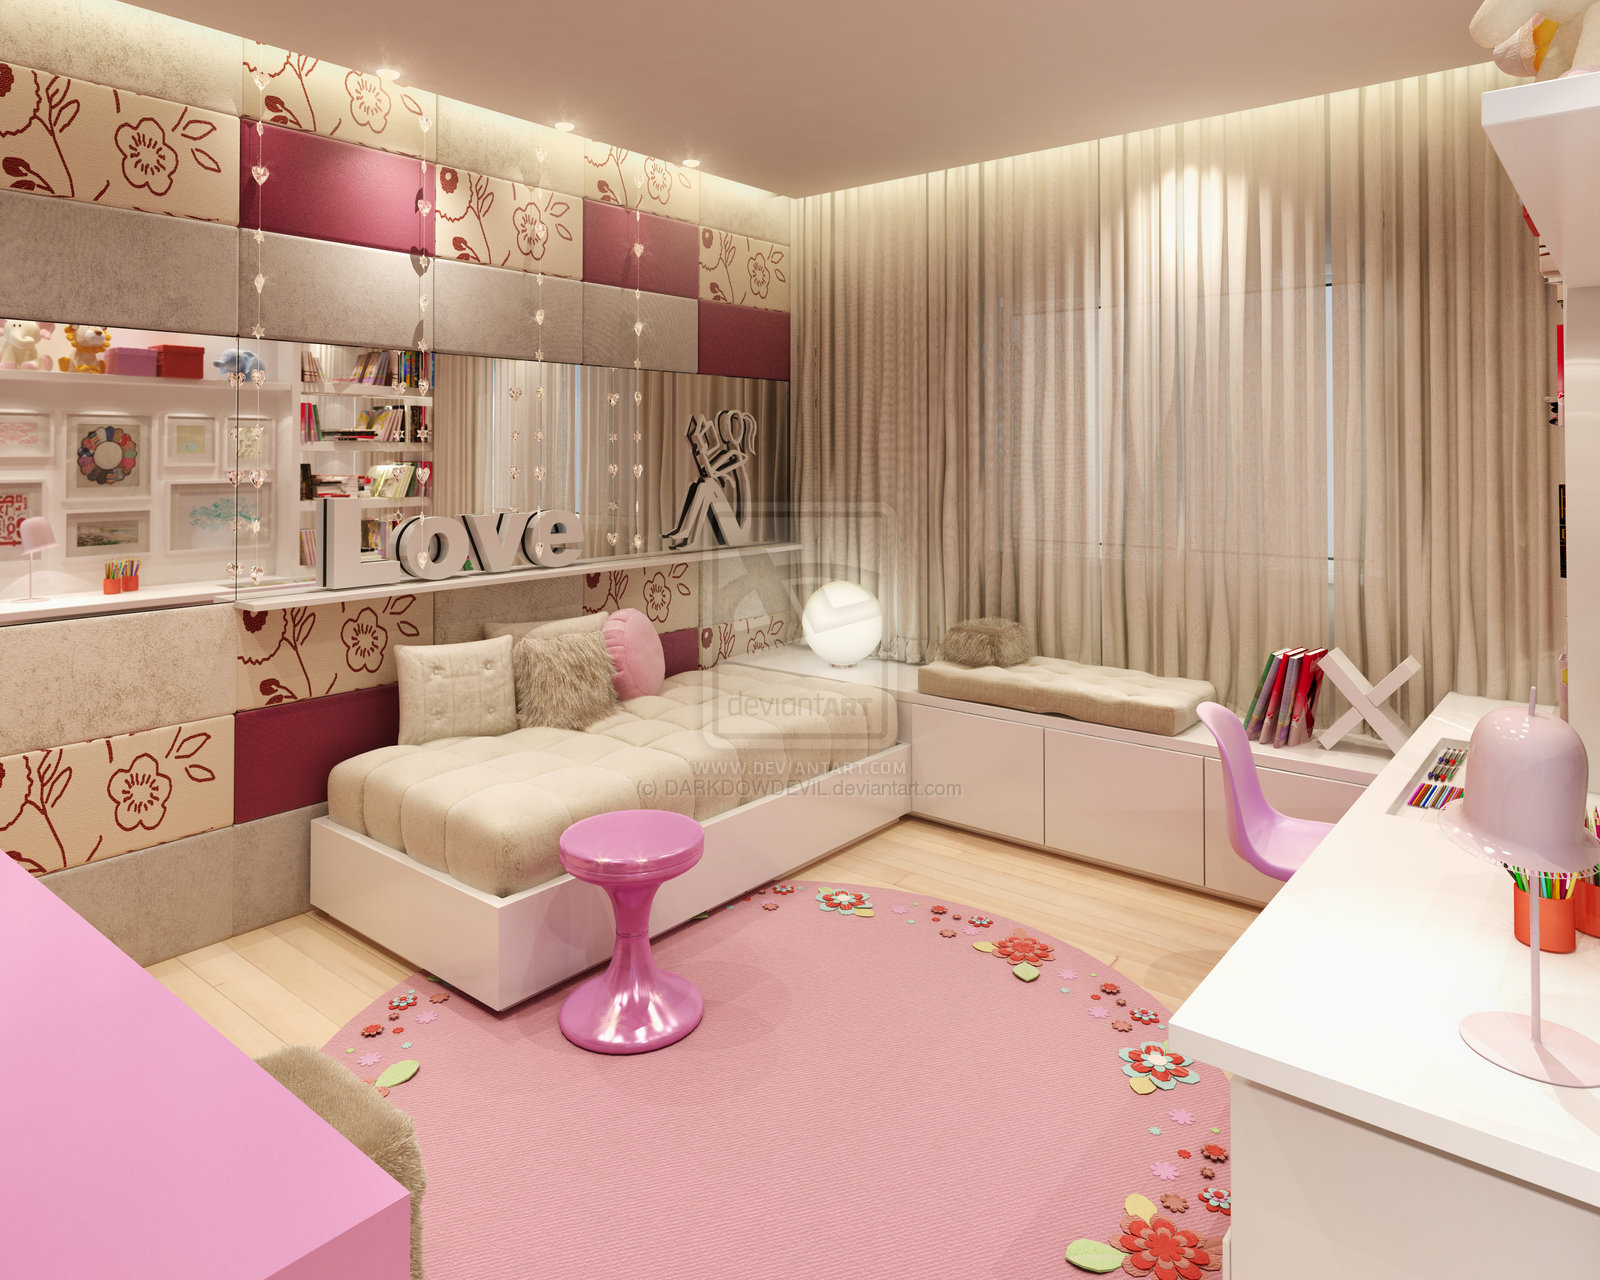 Girly bedroom design ideas azee - Cute girl room ideas ...